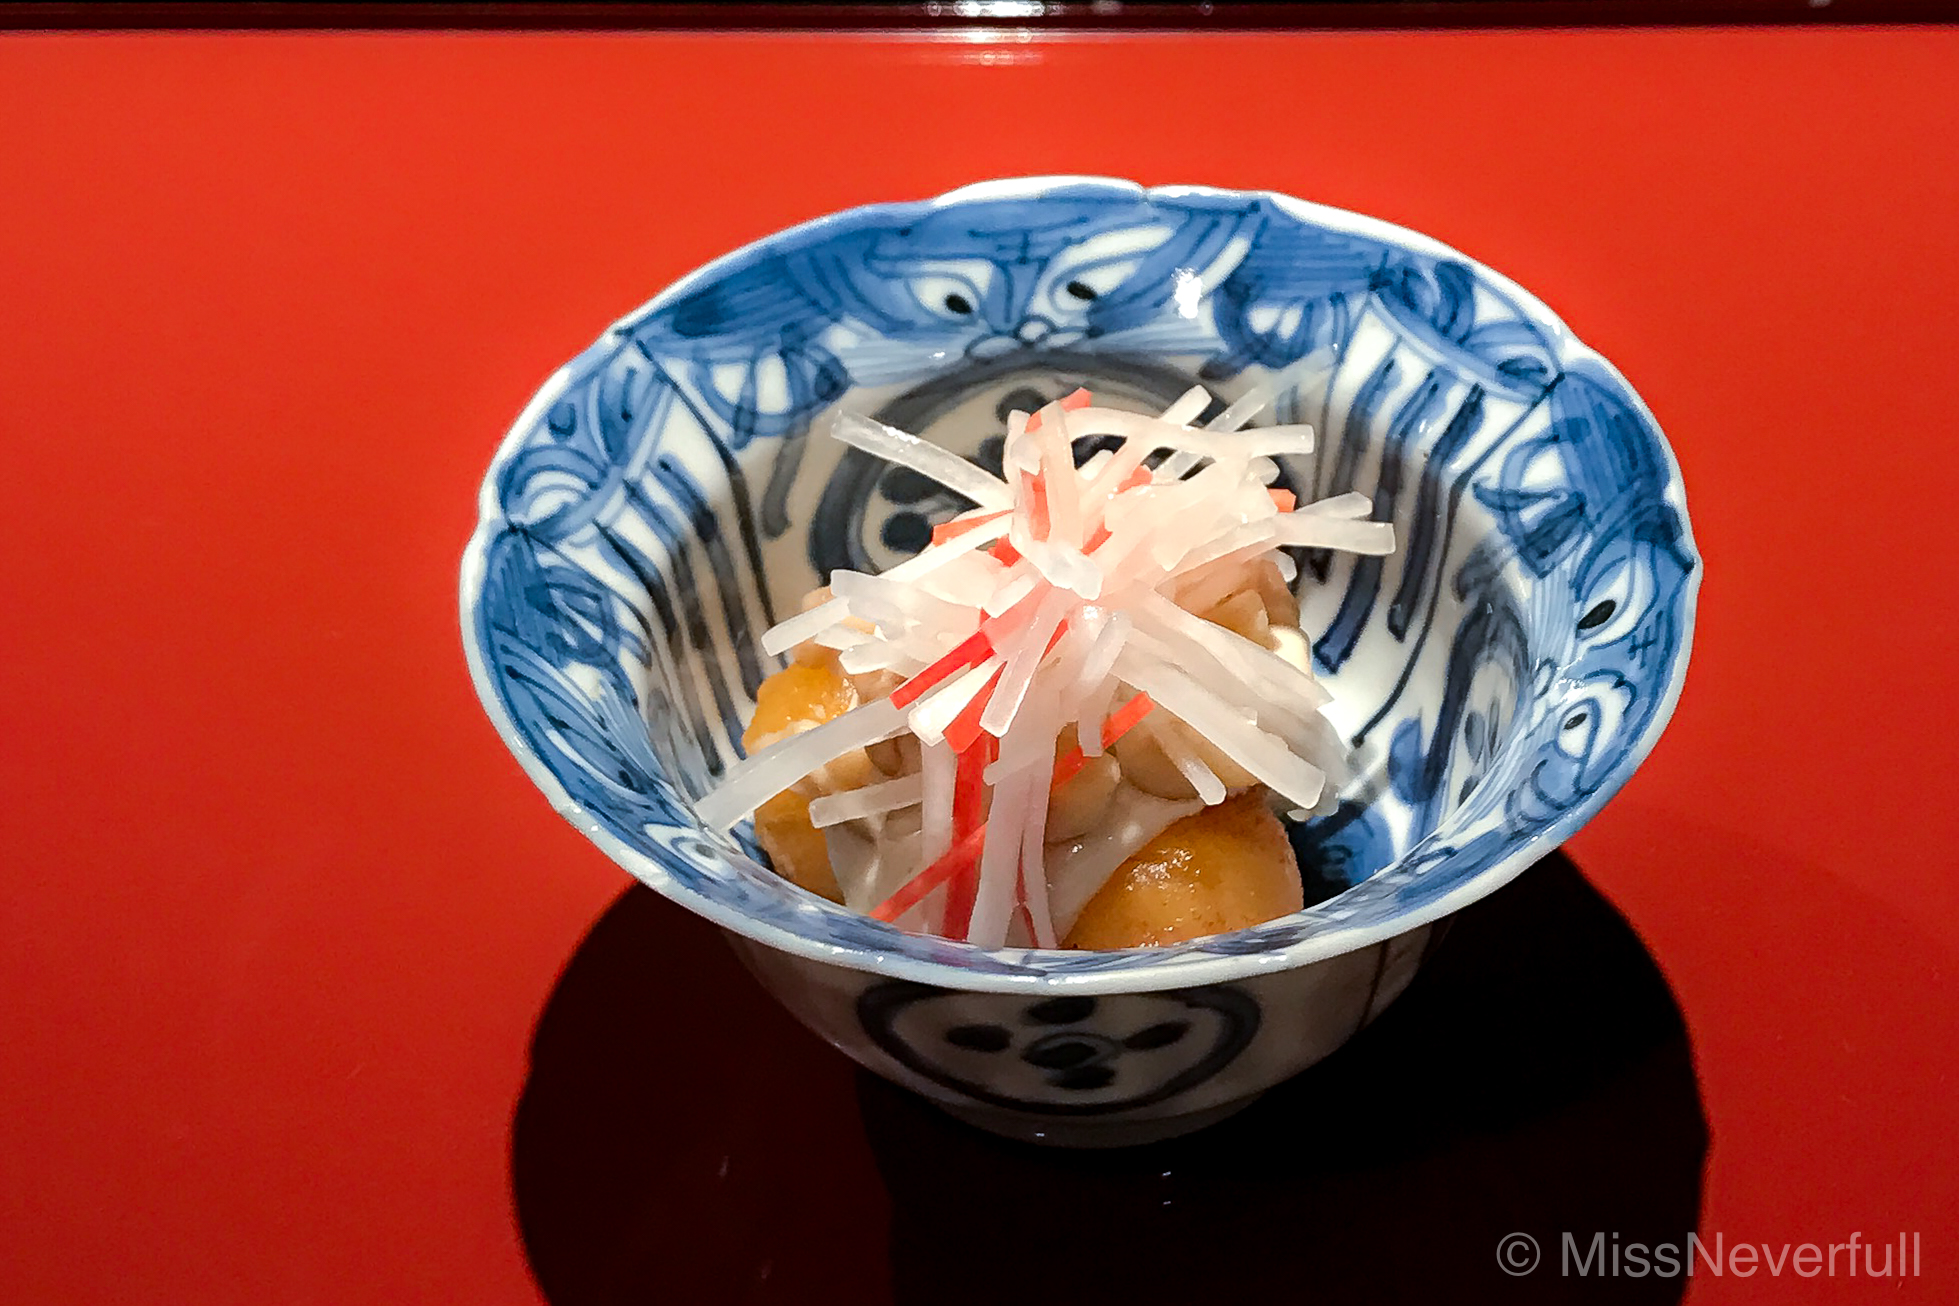 2.Deep-fried persimmon, pickled radish and carrots